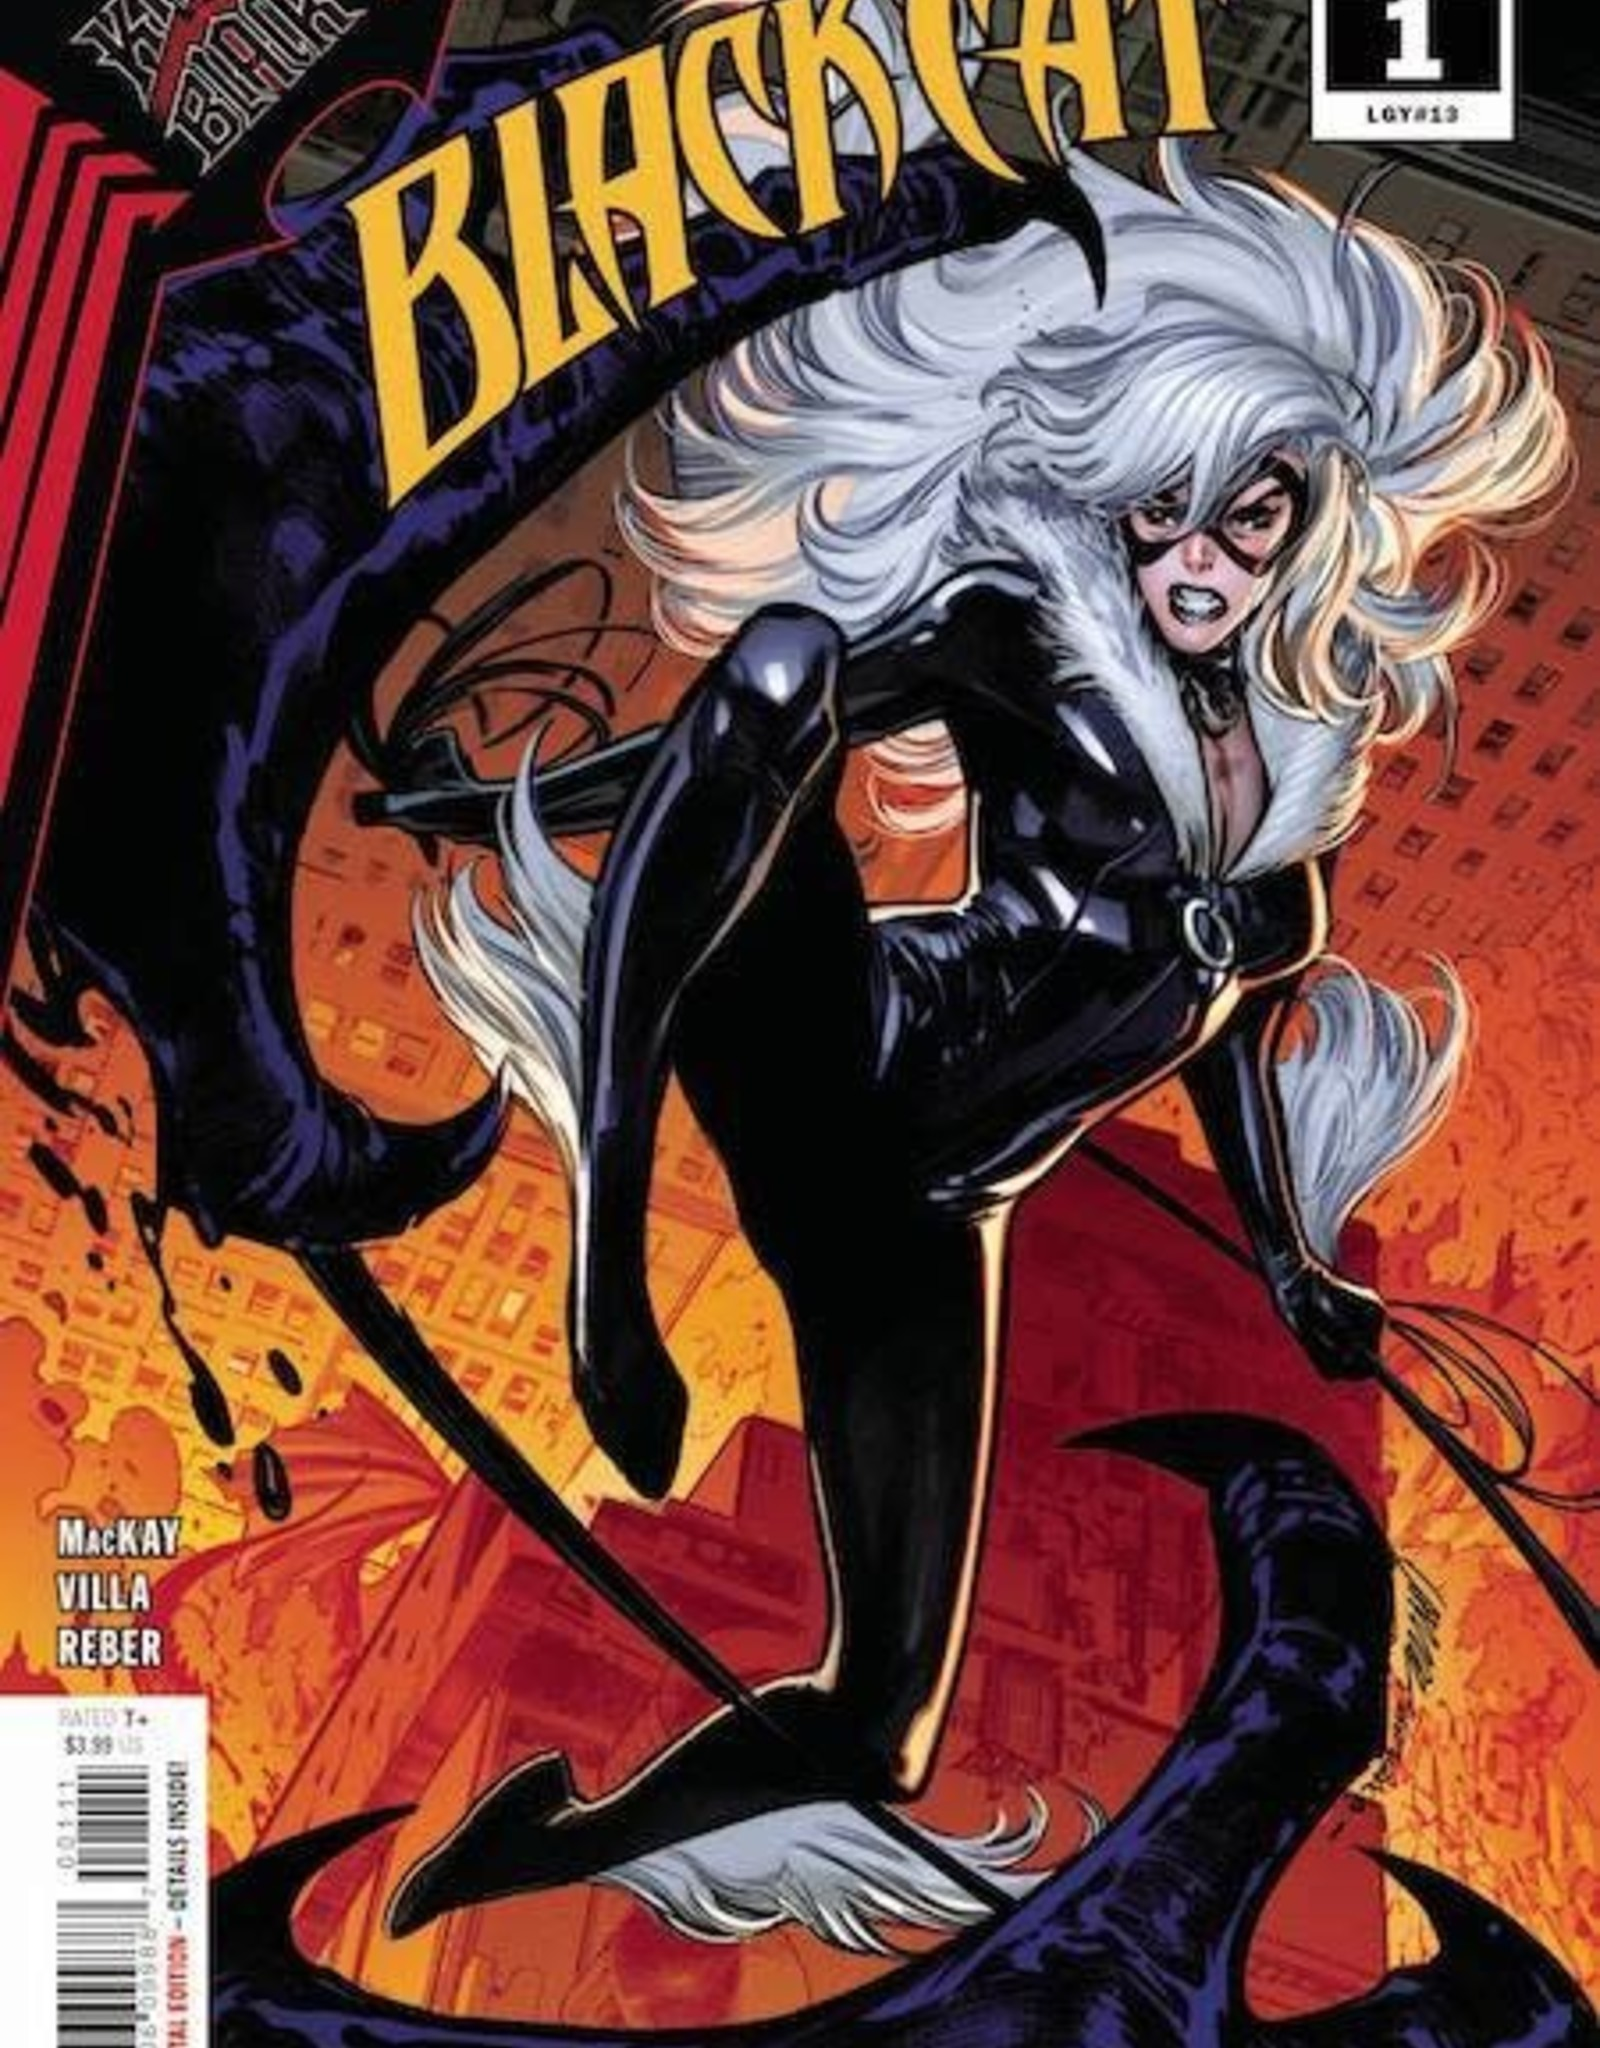 Marvel Comics Black Cat #1 KIB